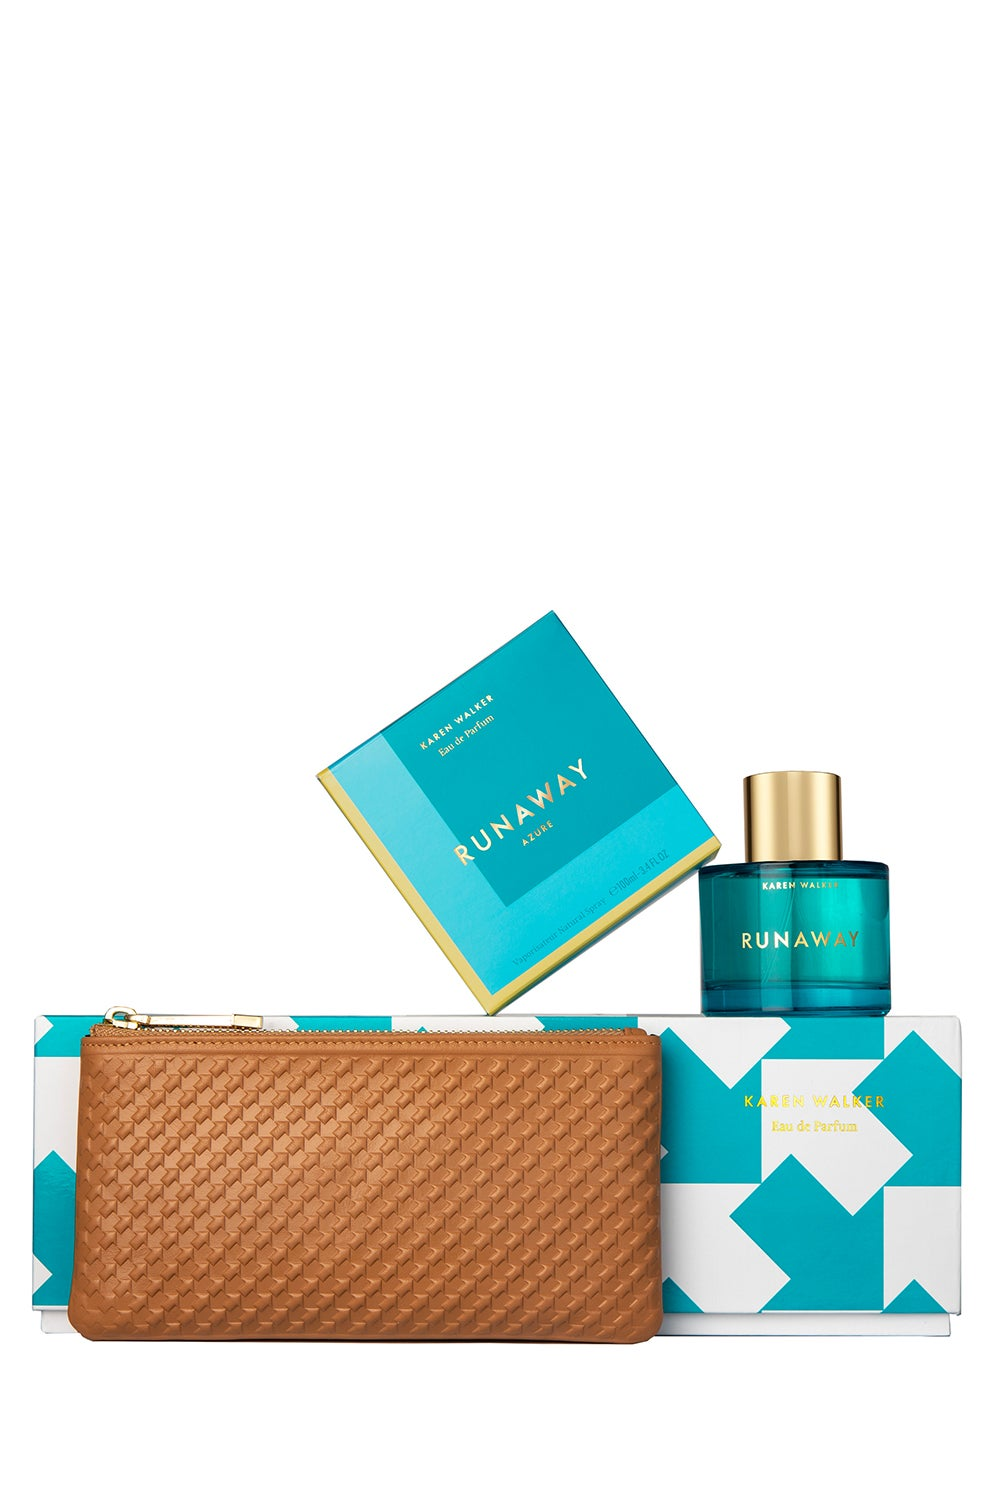 Runaway Azure 100ml Set with Long Purse